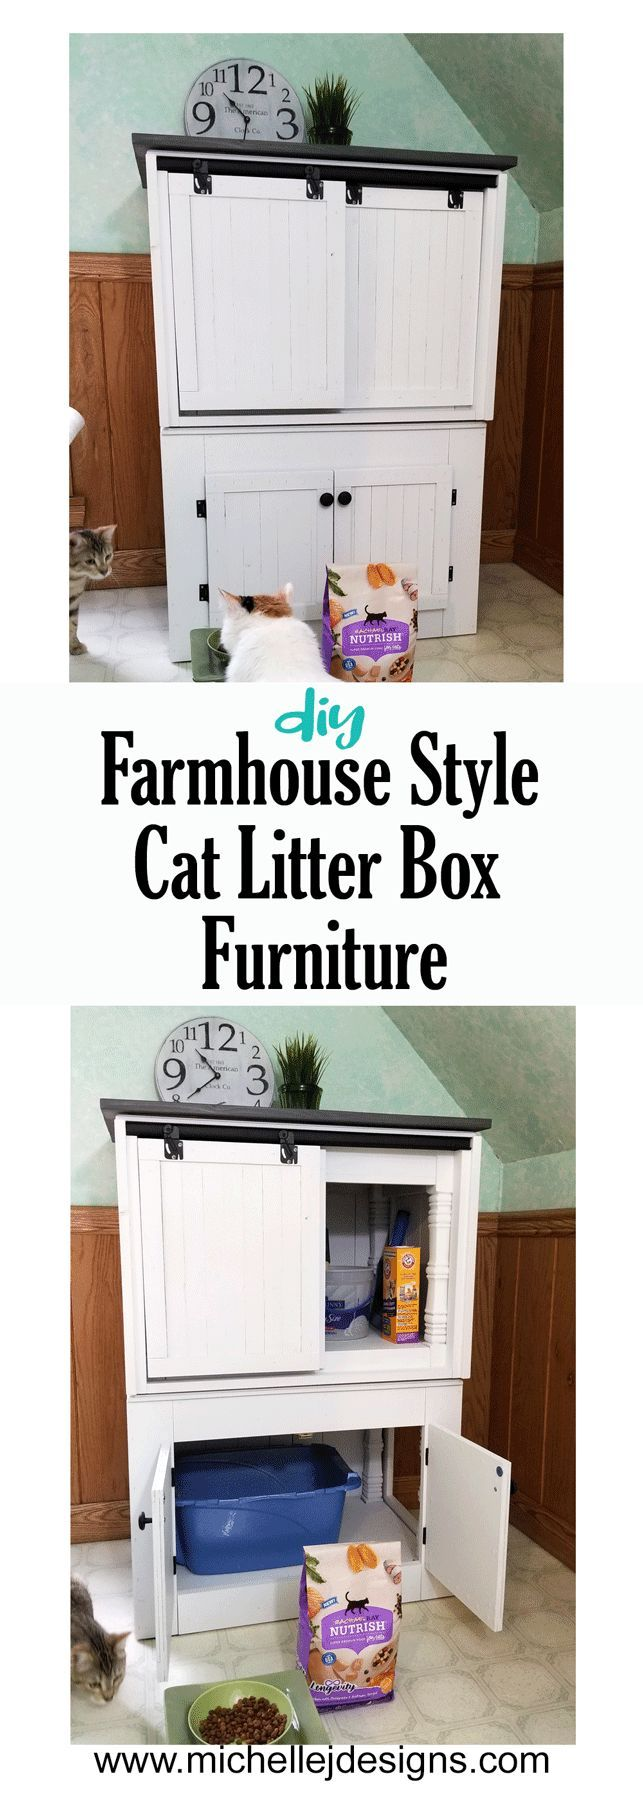 DIY Farmhouse Style Cat Litter Box Furniture (With images